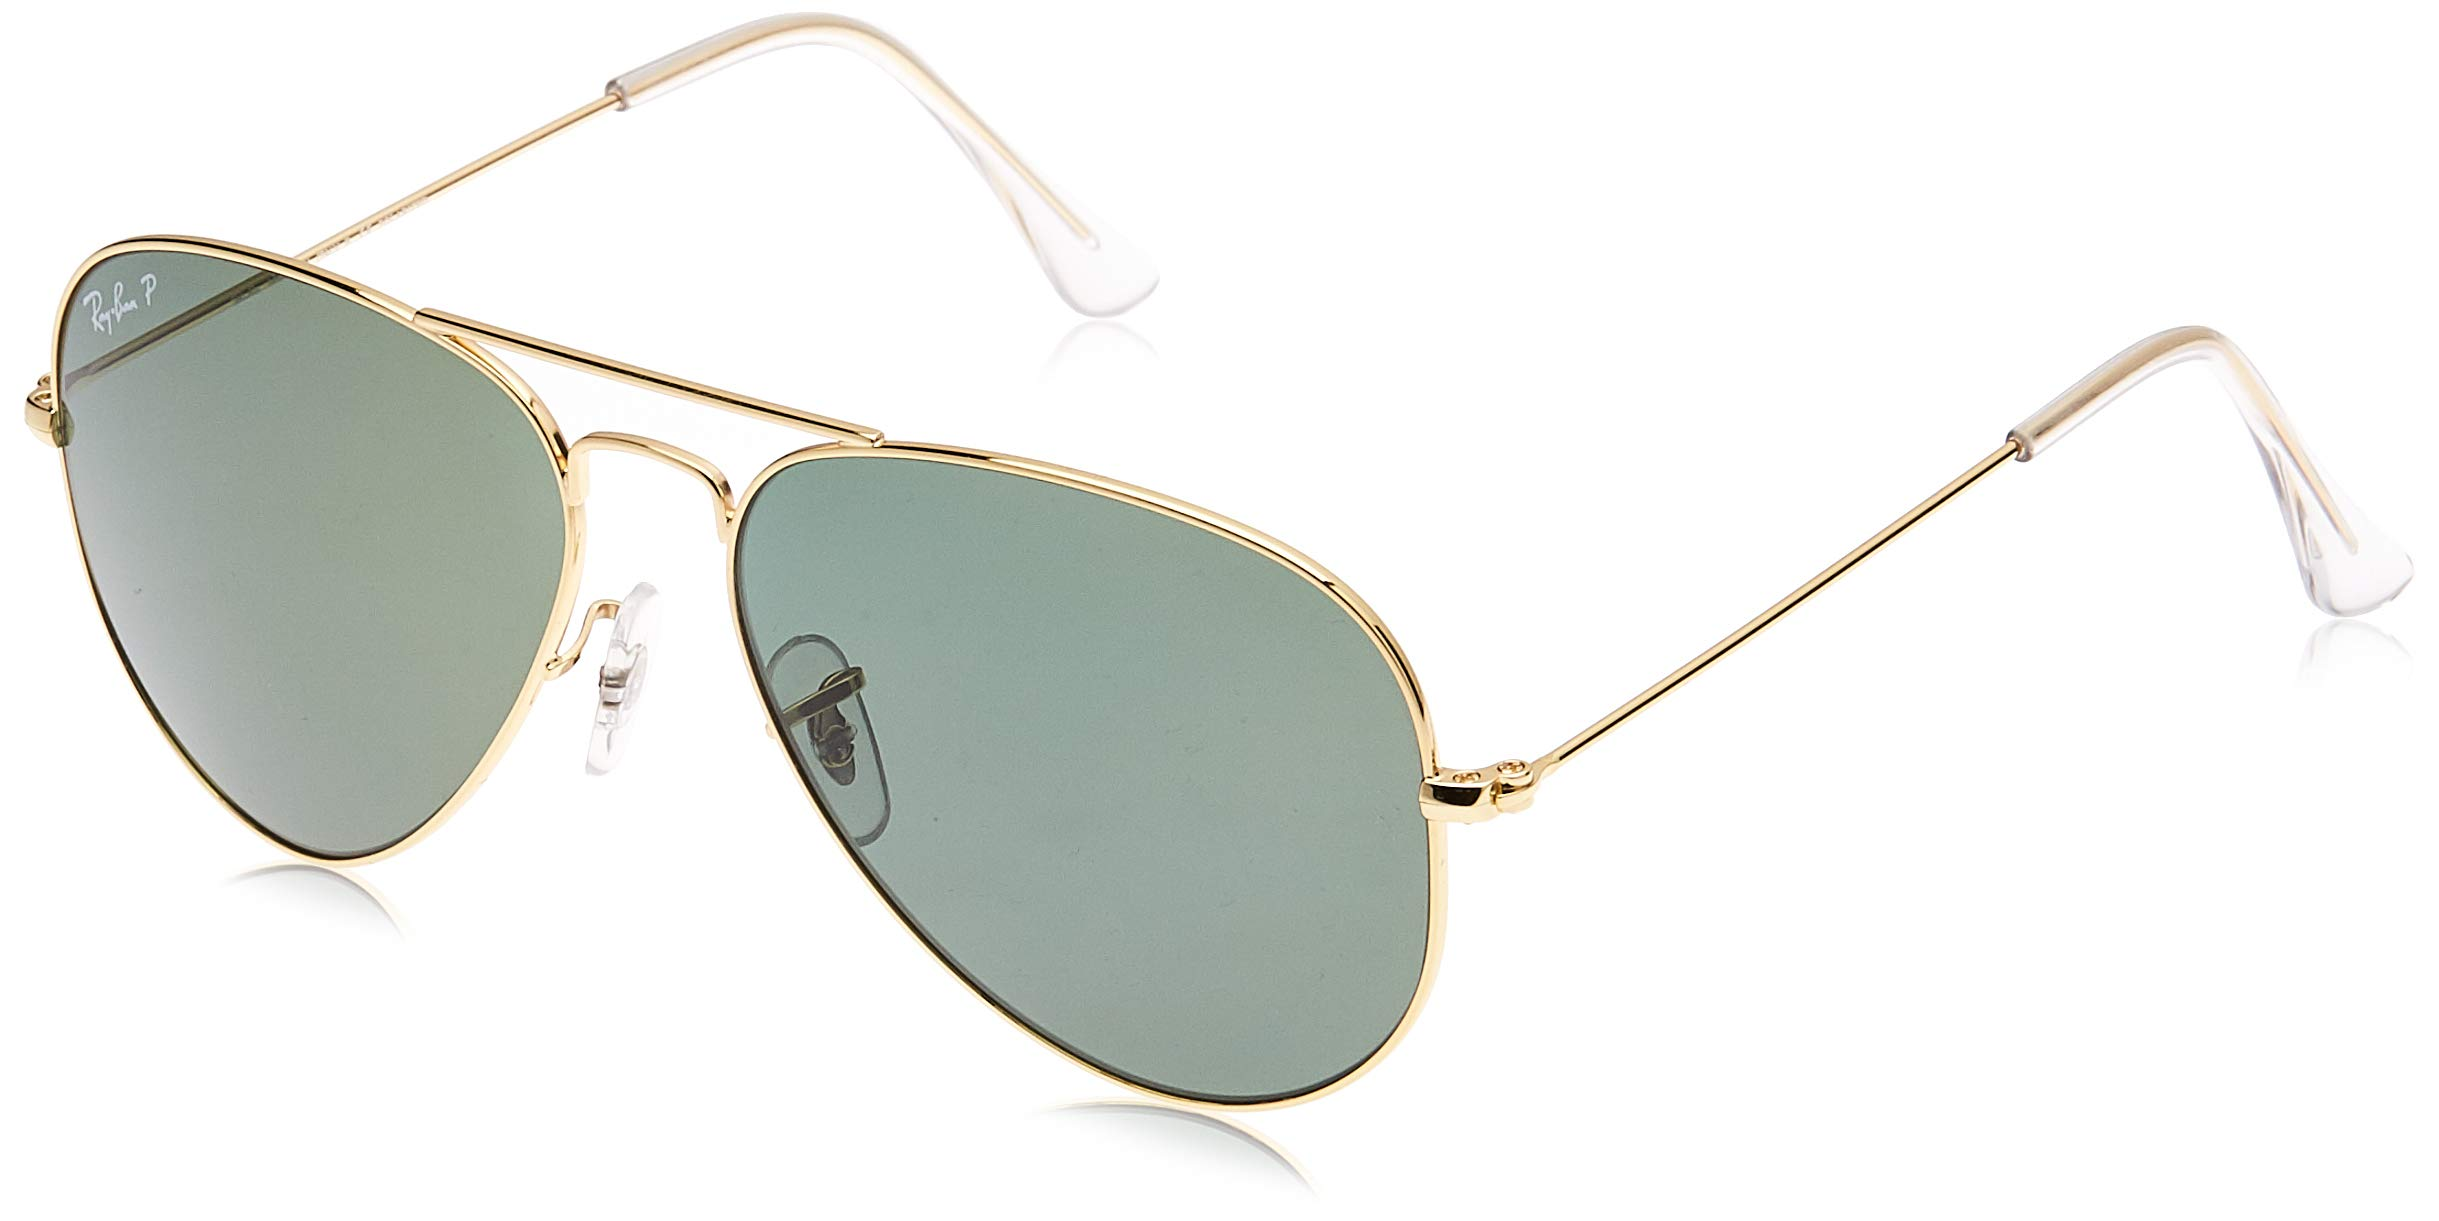 Ray-Ban RB3025 Aviator Large Metal Sunglasses 58 mm, Polarized, Arista Gold/Polarized Crystal Green by RAY-BAN